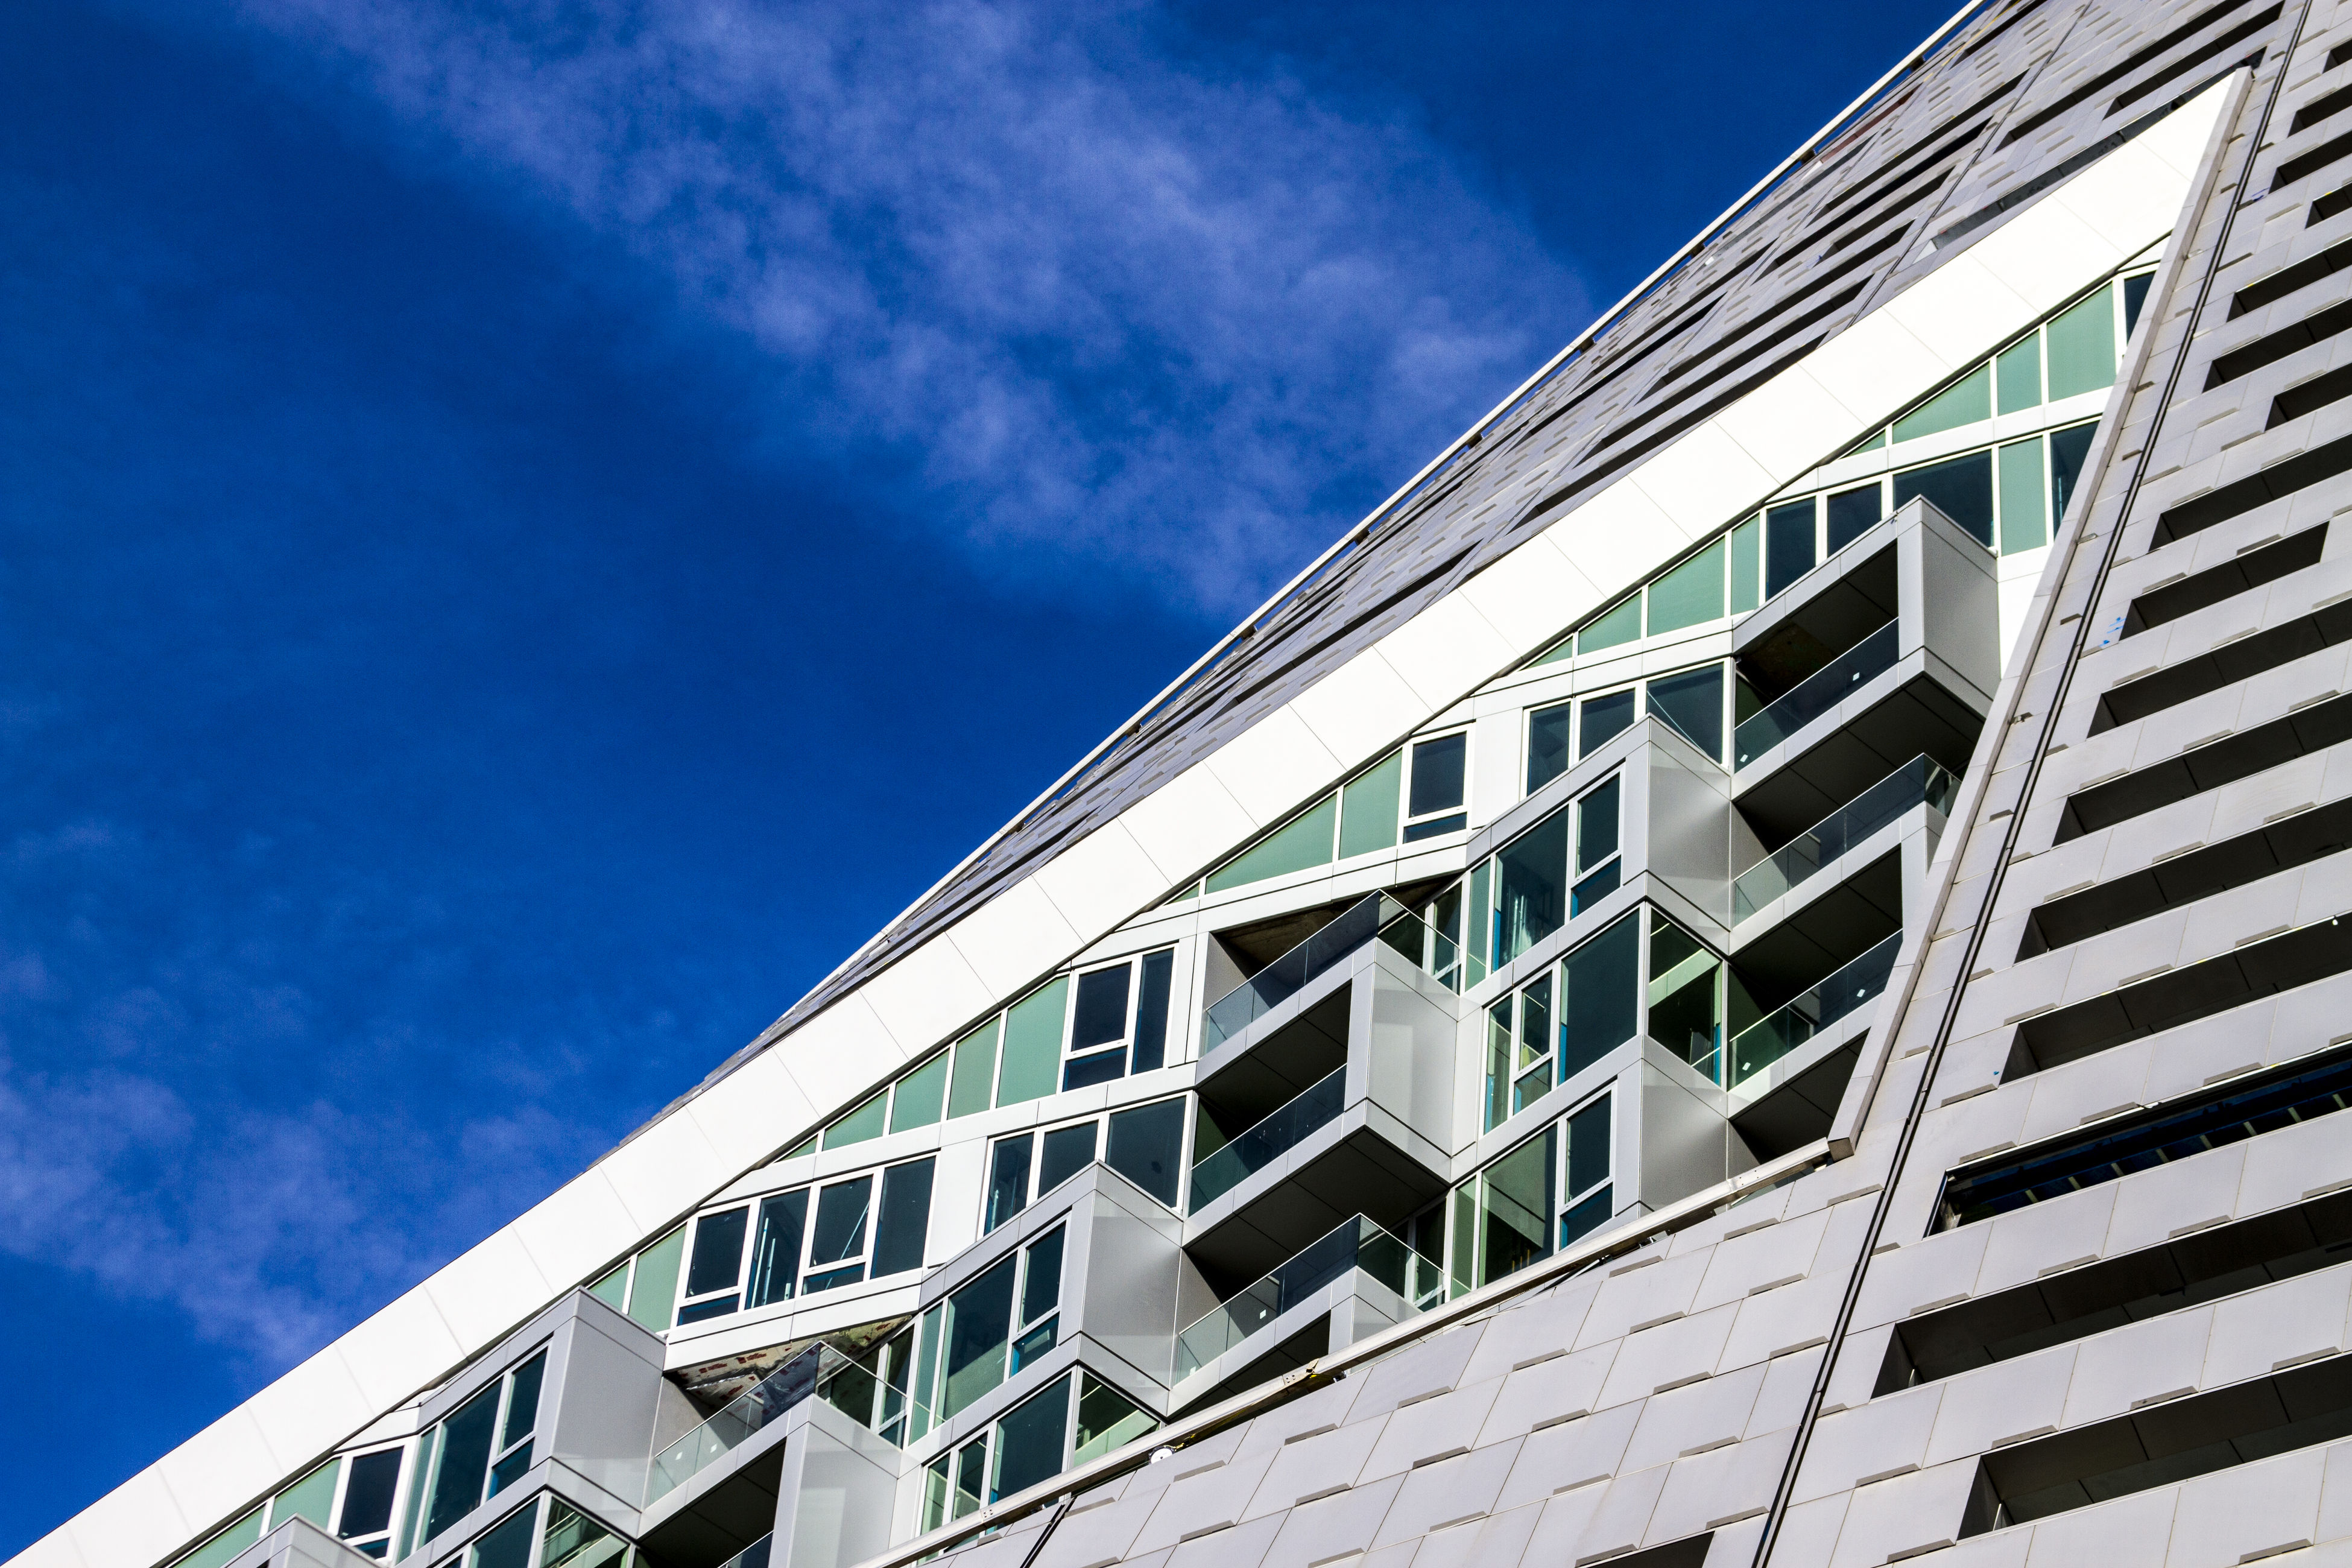 architecture, building exterior, built structure, low angle view, blue, window, sky, building, modern, city, office building, day, residential structure, glass - material, reflection, residential building, cloud, outdoors, no people, repetition